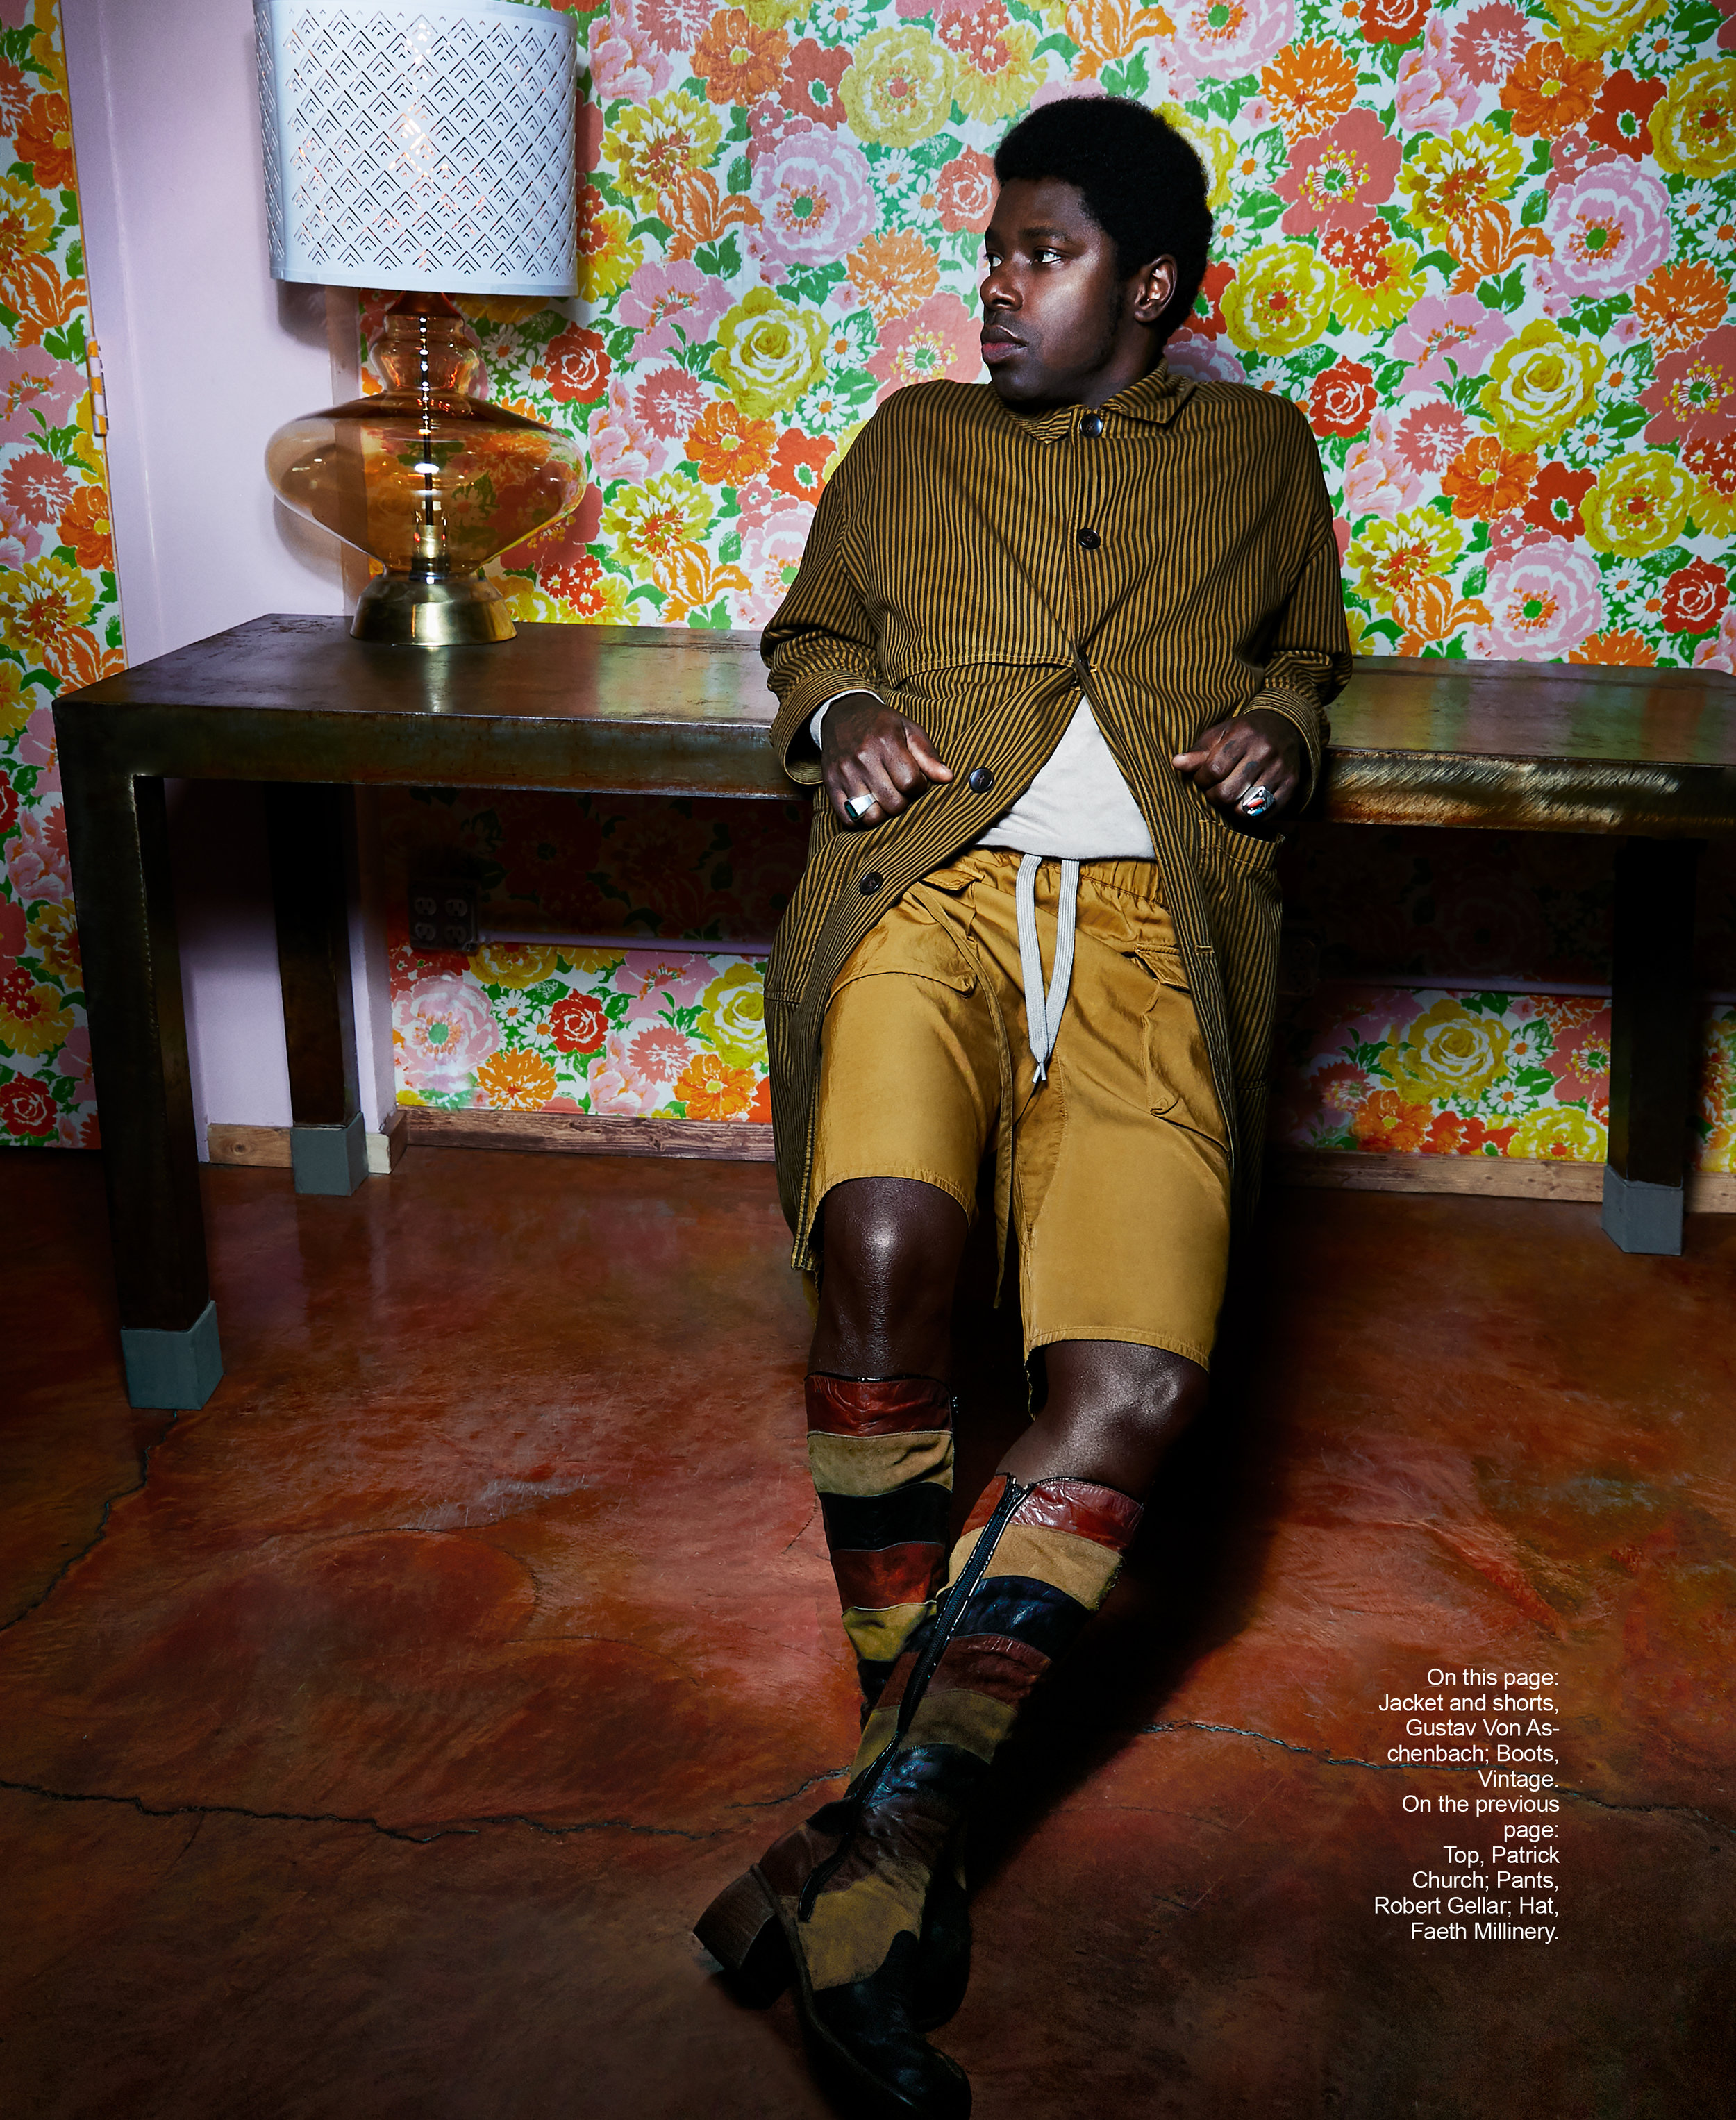 CURTIS HARDING x THIS BITCH MAGAZINE